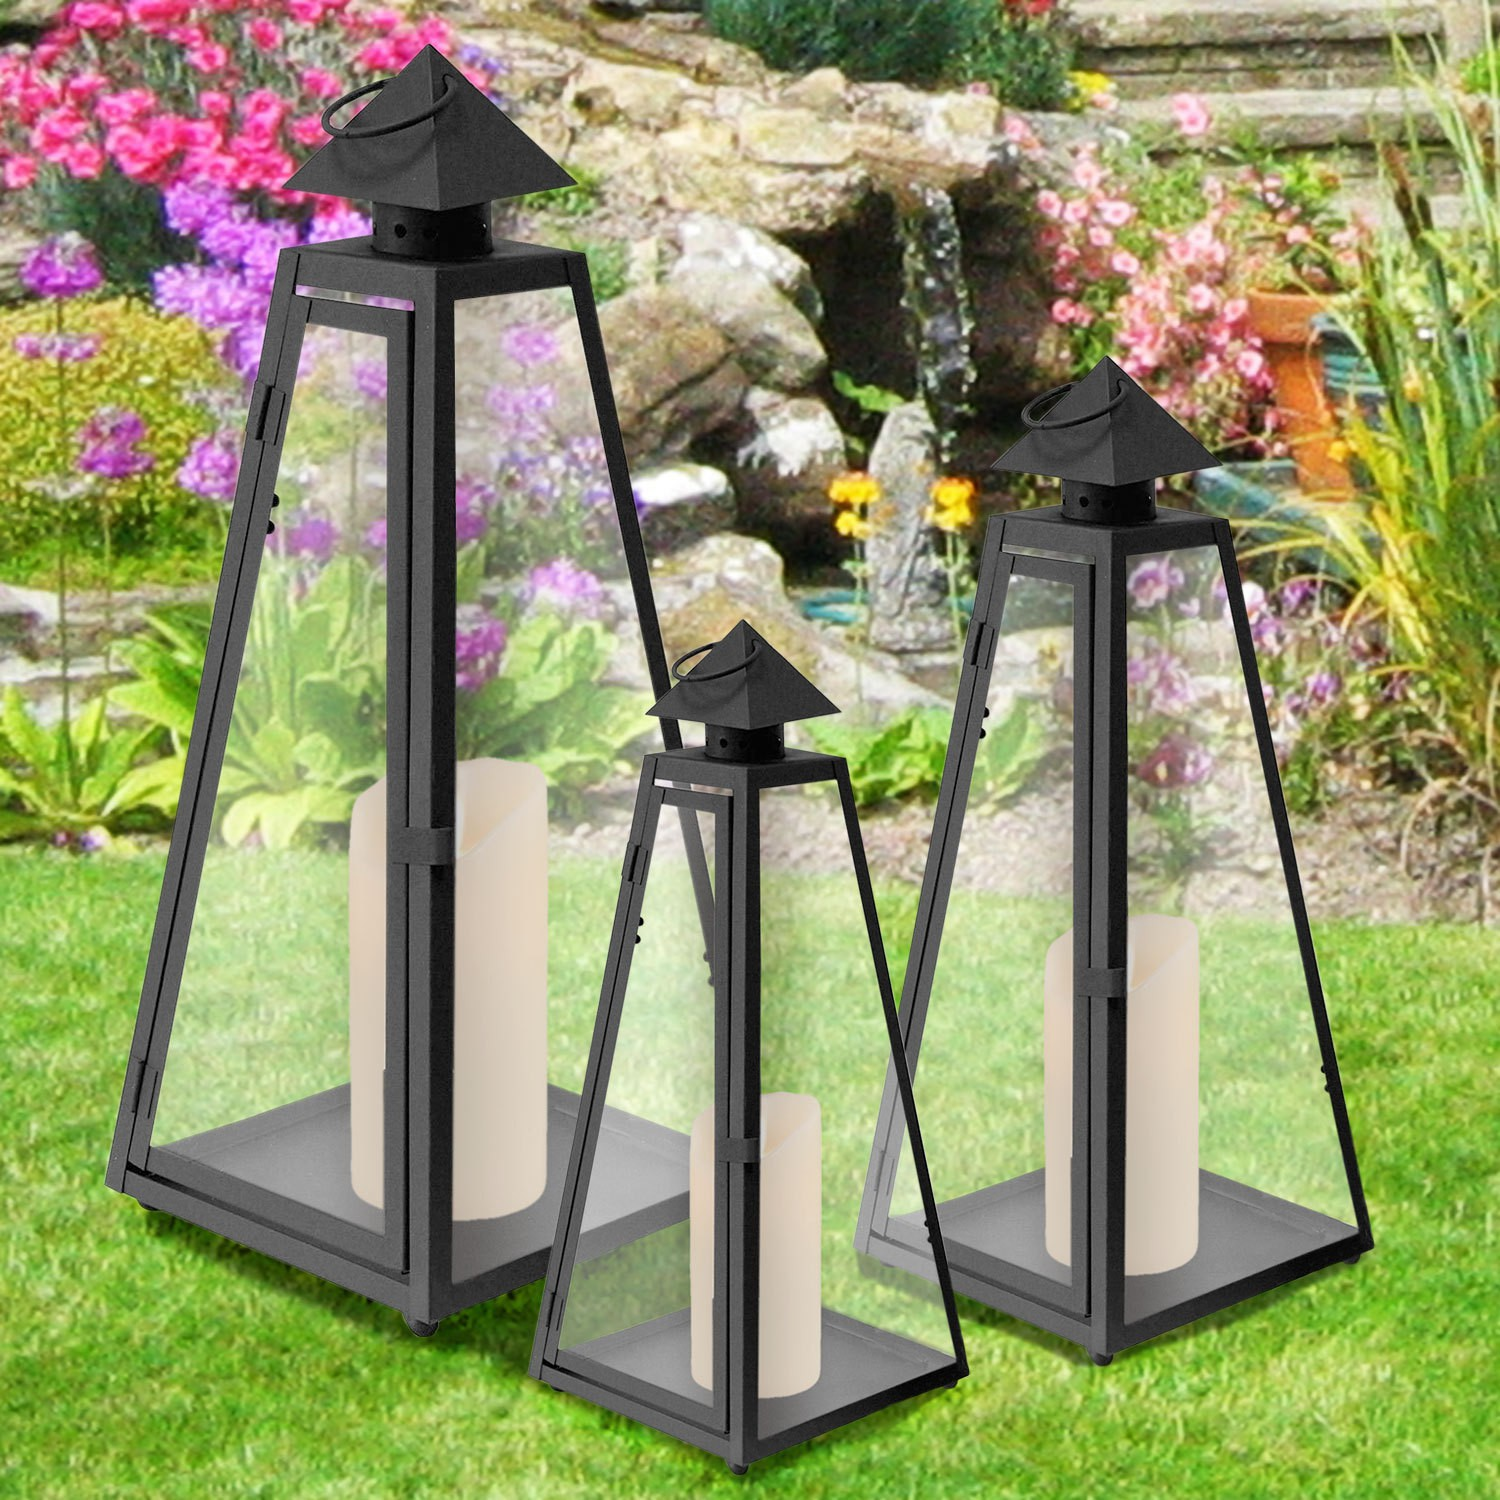 3er set laterne gartenlampe gartenlaterne windlicht metall glas kerzenhalter ebay. Black Bedroom Furniture Sets. Home Design Ideas